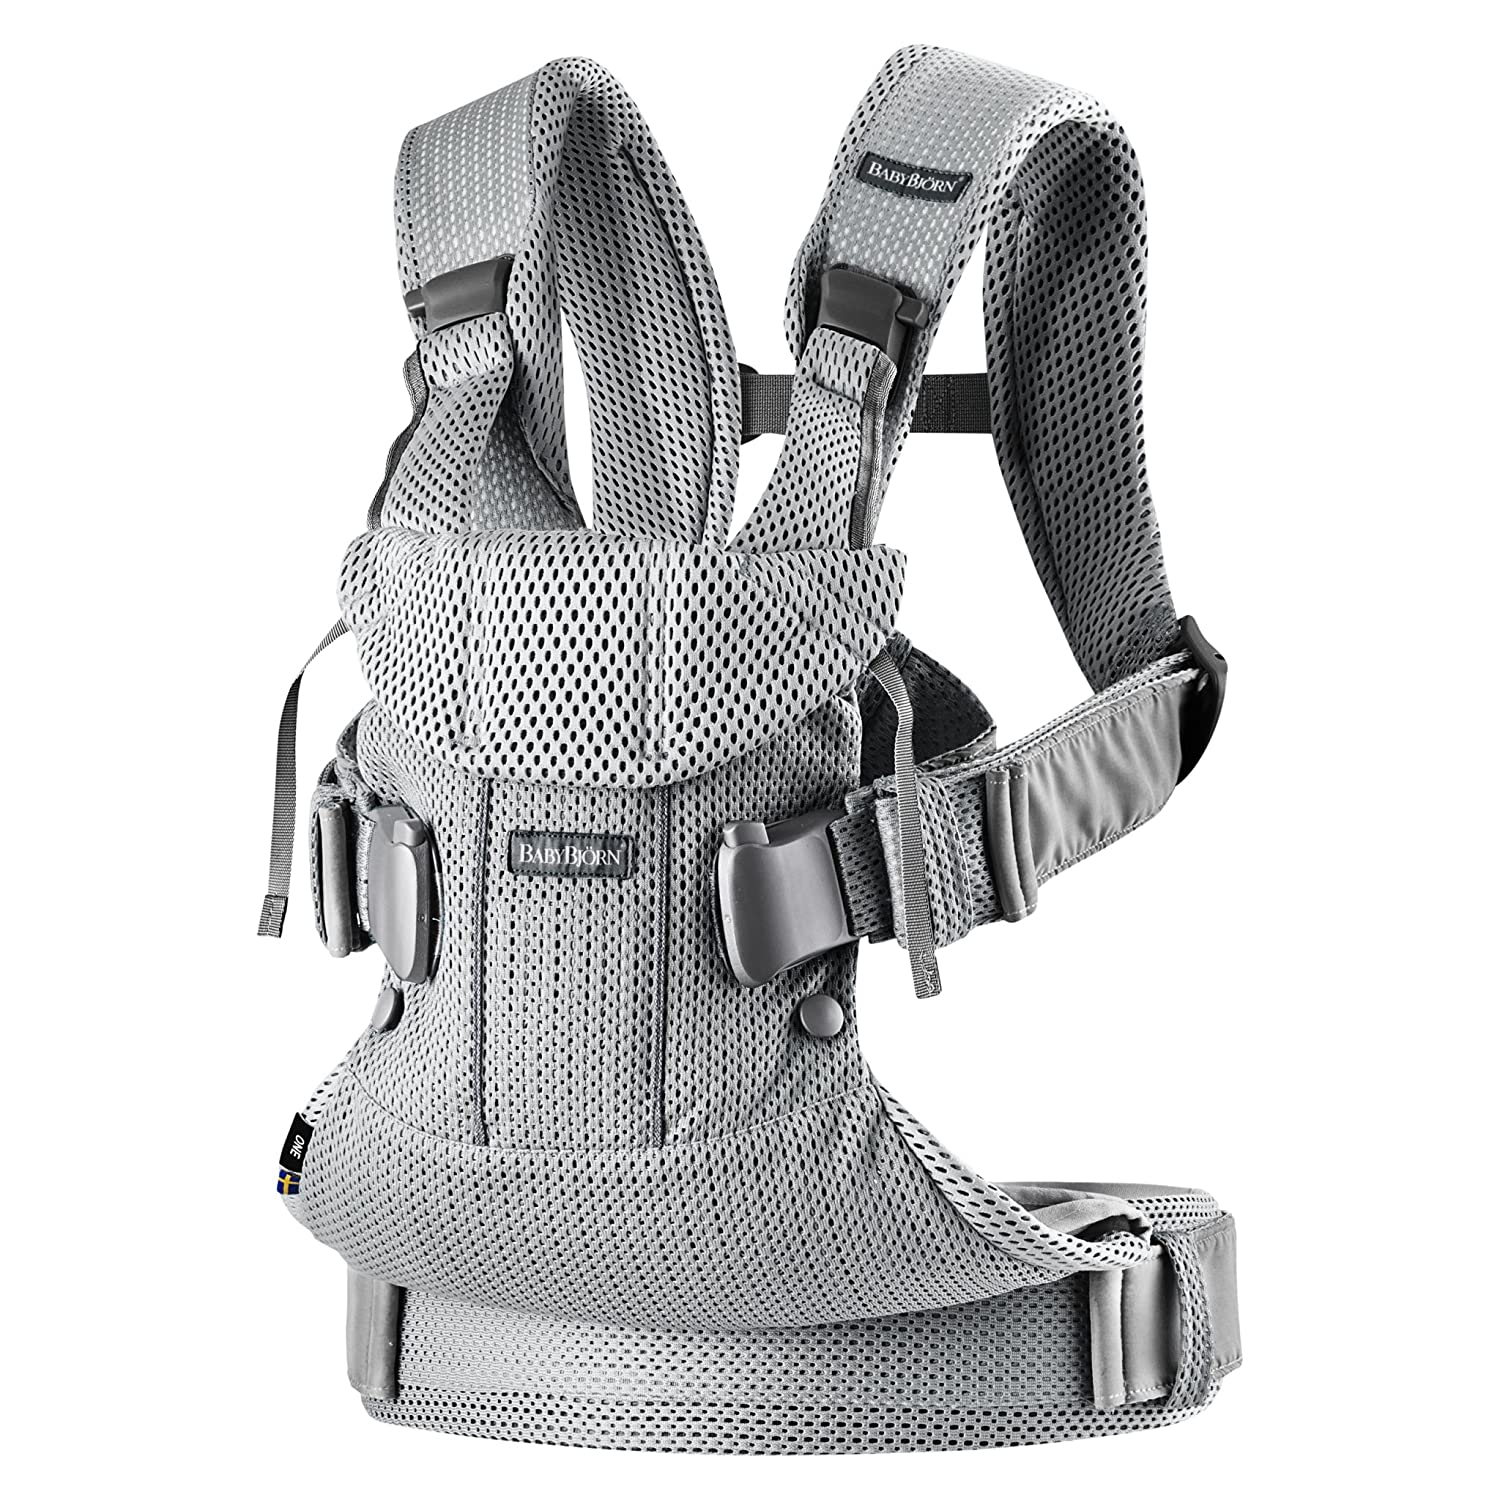 Best for dads: One Outdoors Baby Carrier by Babybjorn